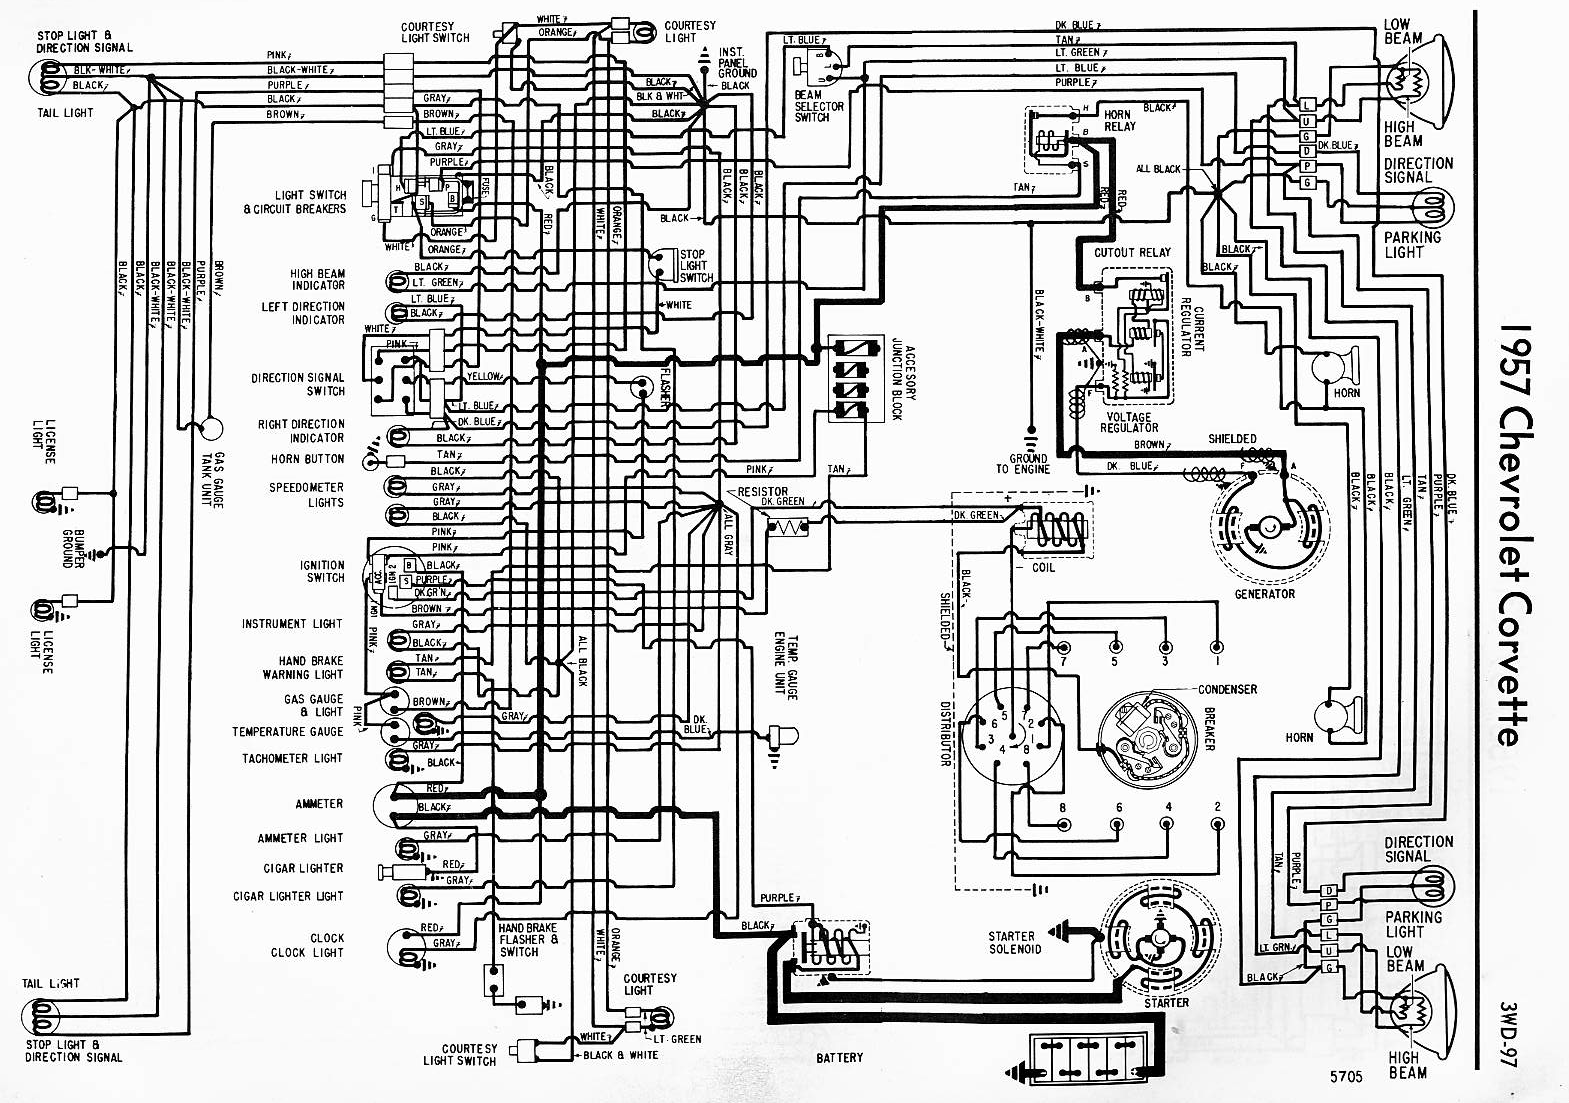 1957 corvette wiring diagram willcox corvette, inc 1981 Corvette Wiring Harness 1991 corvette wiring diagram schematic